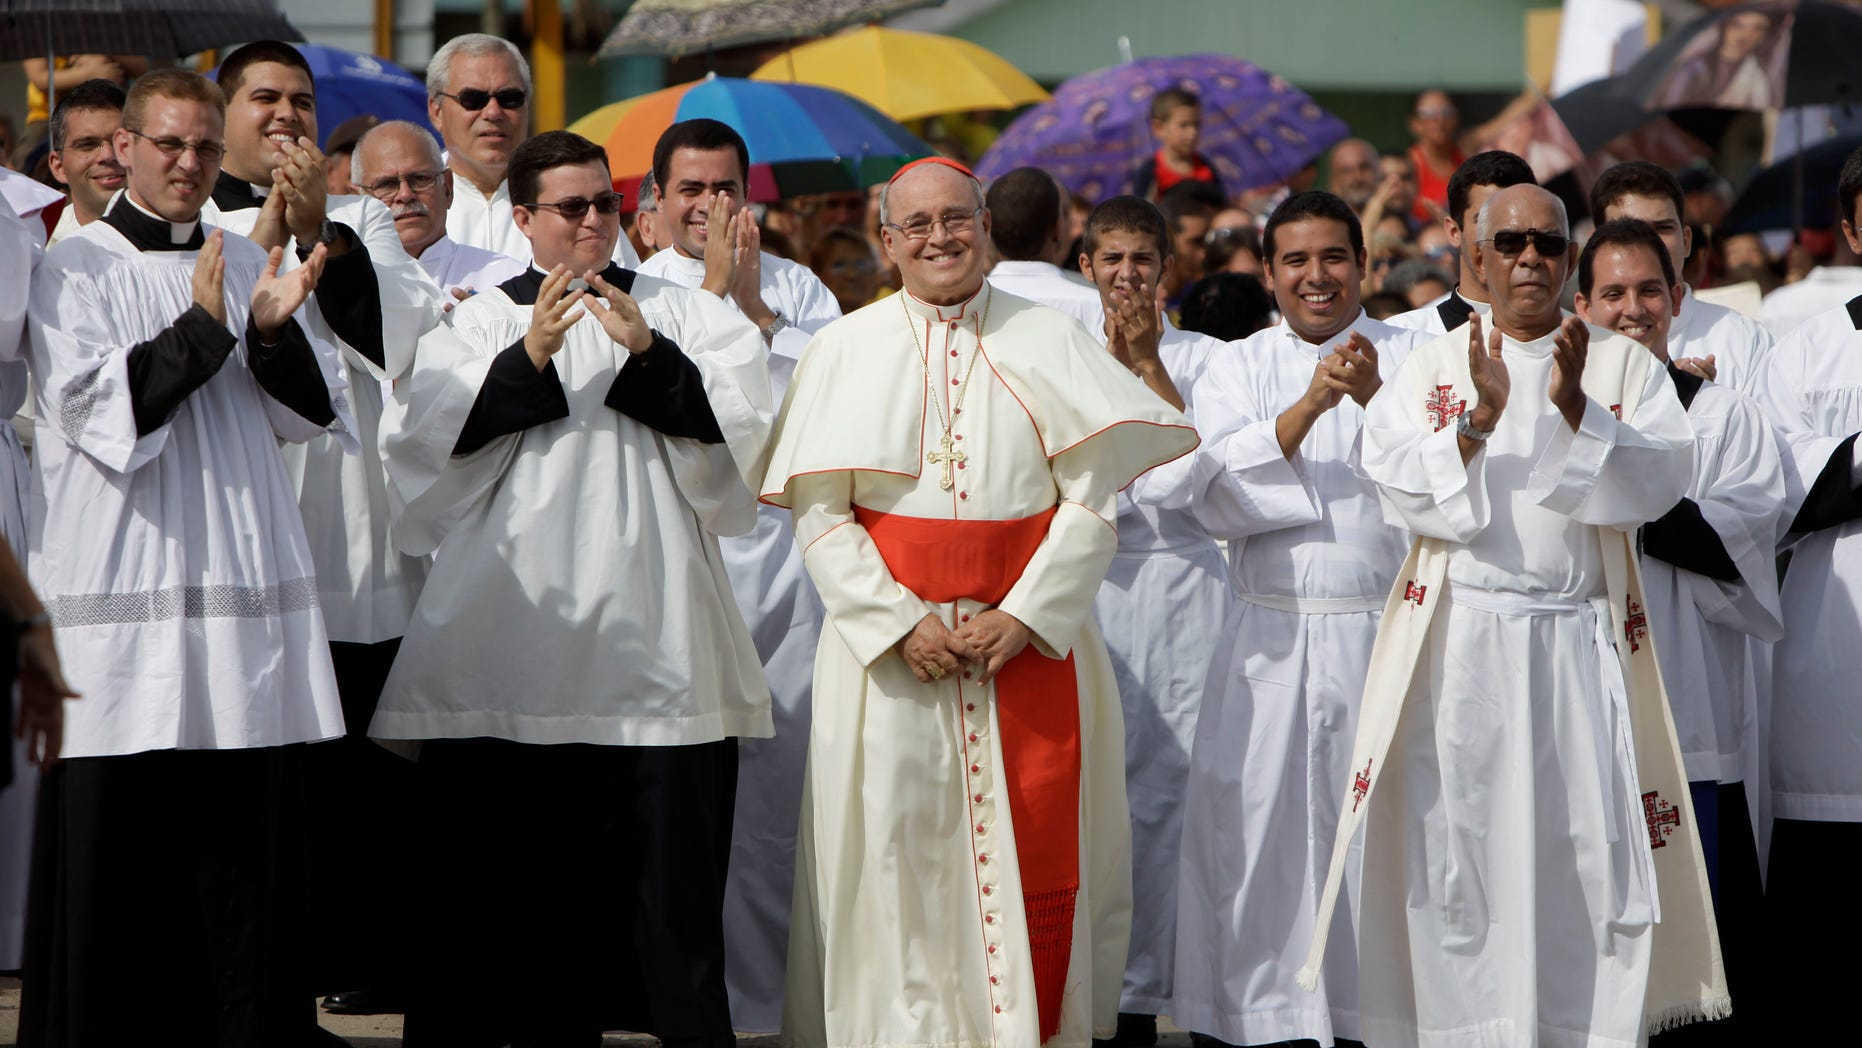 FILE - In this Sept. 4, 2011 file photo, Cuba's Cardinal Jaime Ortega, center, smiles as he waits for the Virgin of the Copper Charity during a procession in Madruga, Cuba. Ortega, who oversaw a warming of relations with the Communist government and played a role in the secret negotiations that led to U.S.-Cuba detente, has stepped down, the Vatican said on Tuesday, April 26, 2016. (AP Photo/Javier Galeano, File)